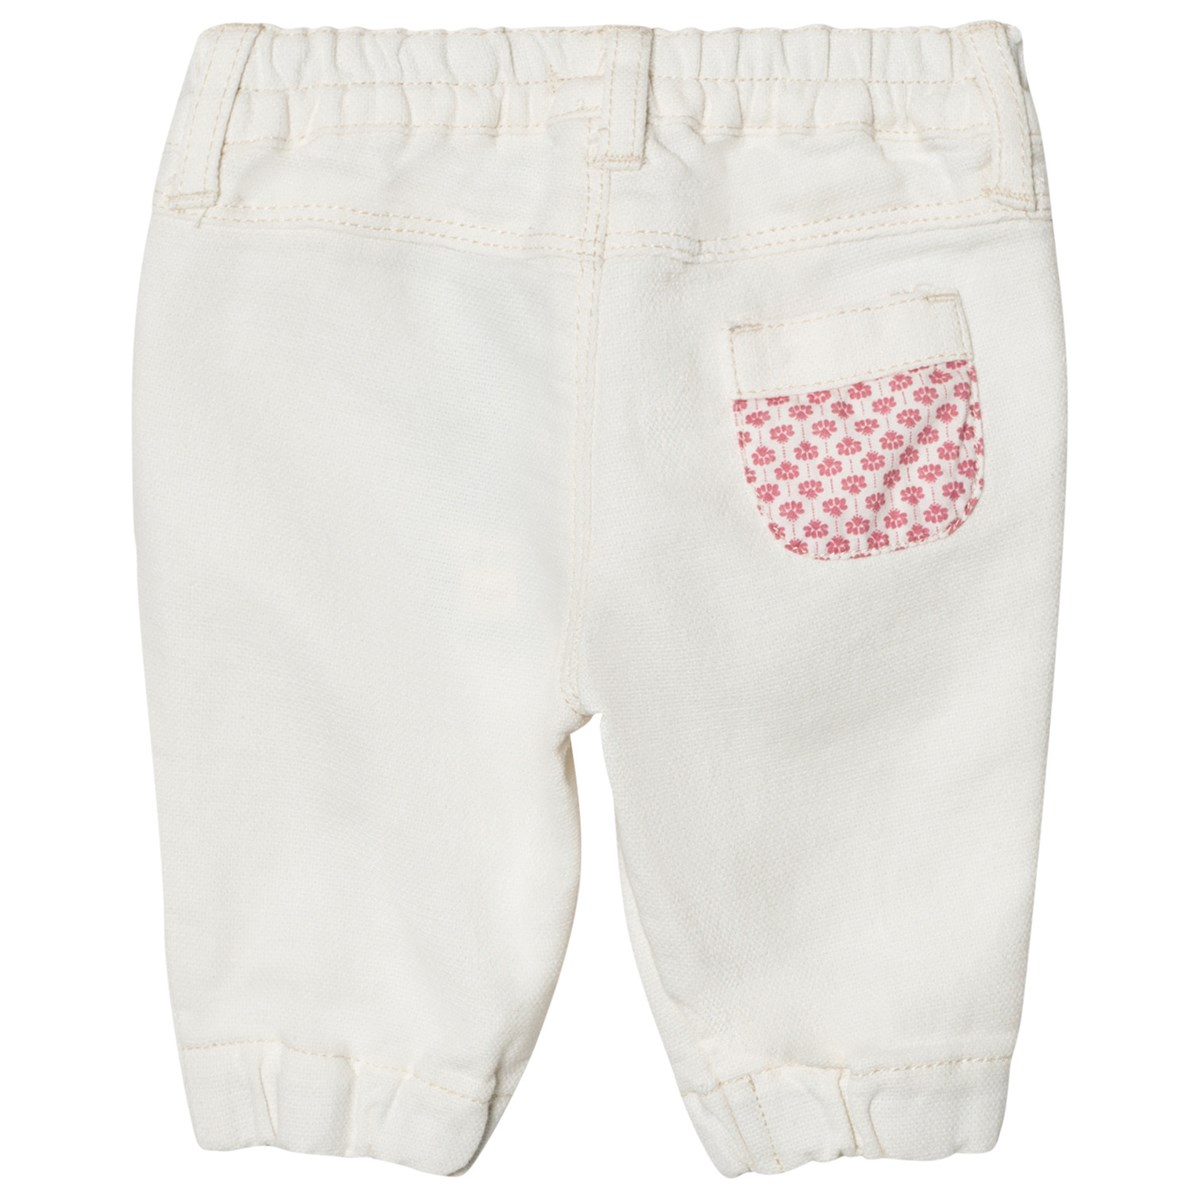 Woven Byxor Frill Front Cream - United Colors of Benetton - Babyshop 40199d7f1d986